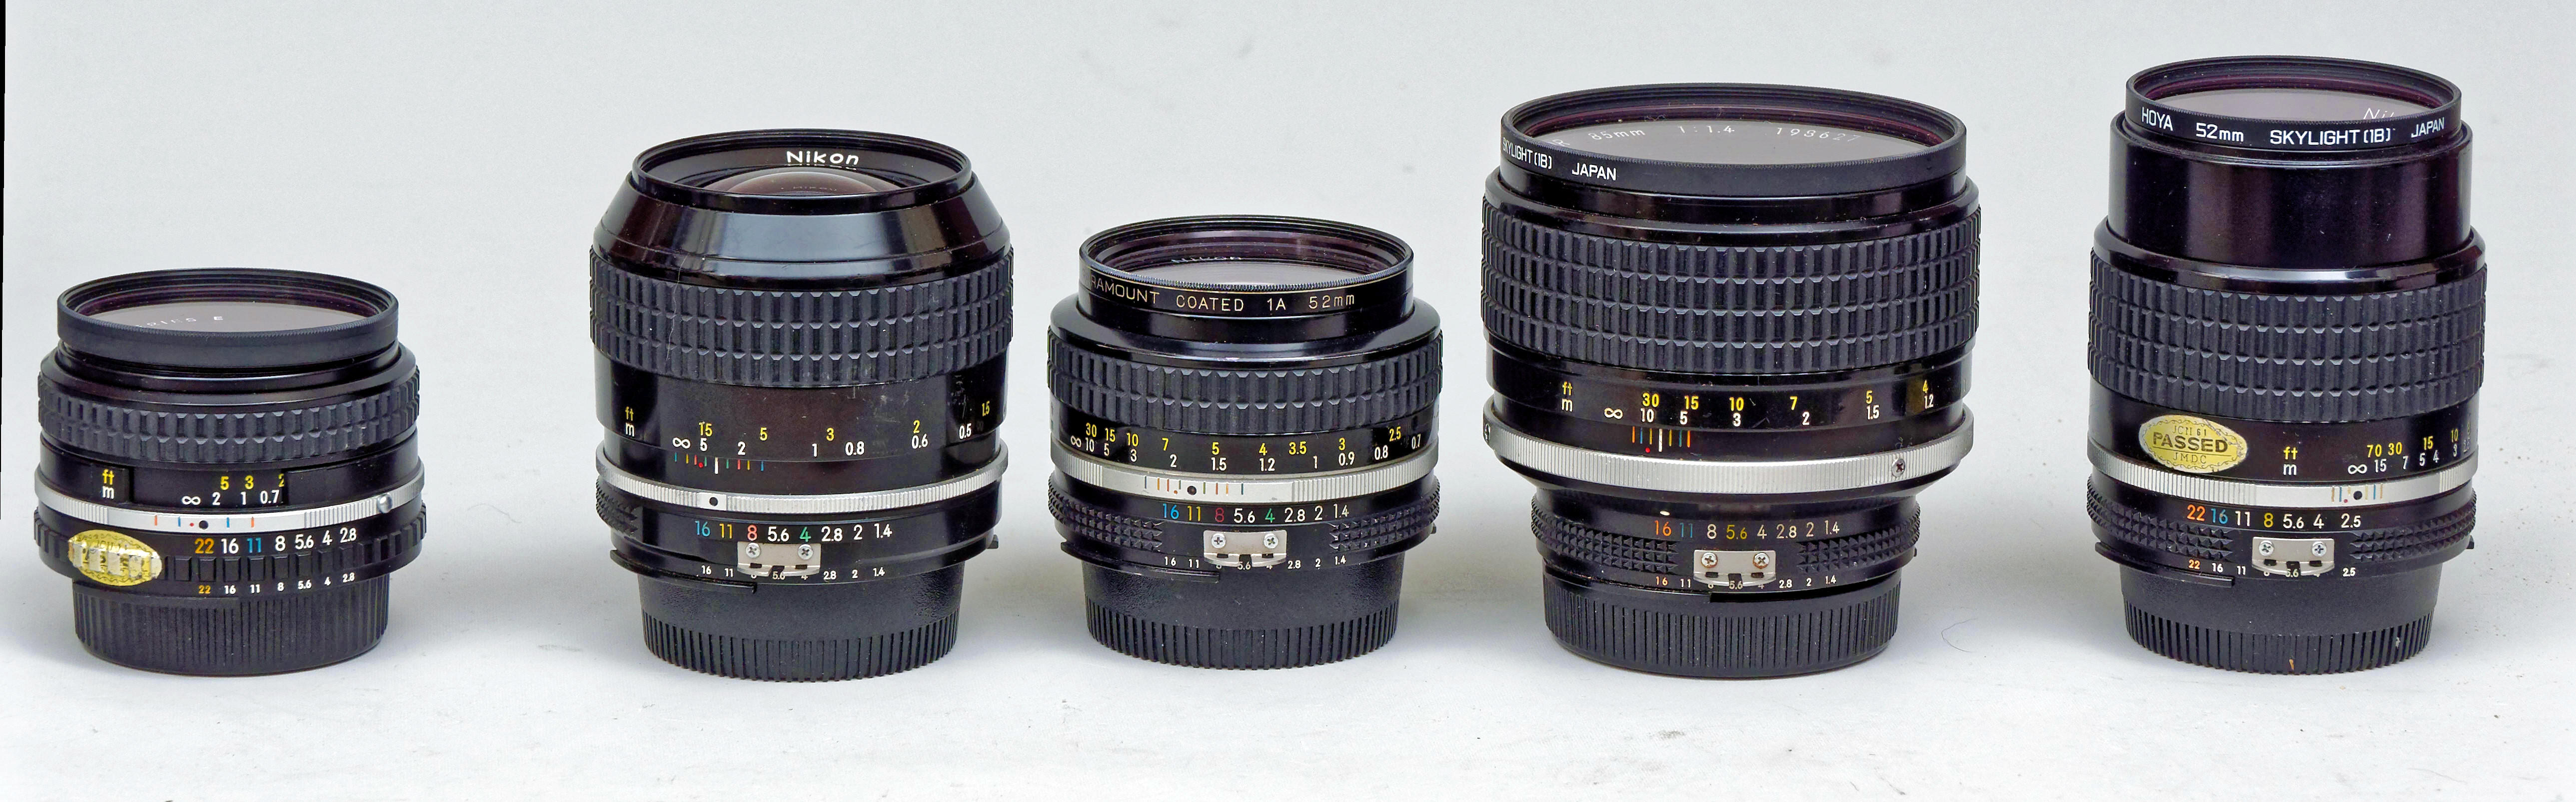 Nikon-lenses-1.jpeg